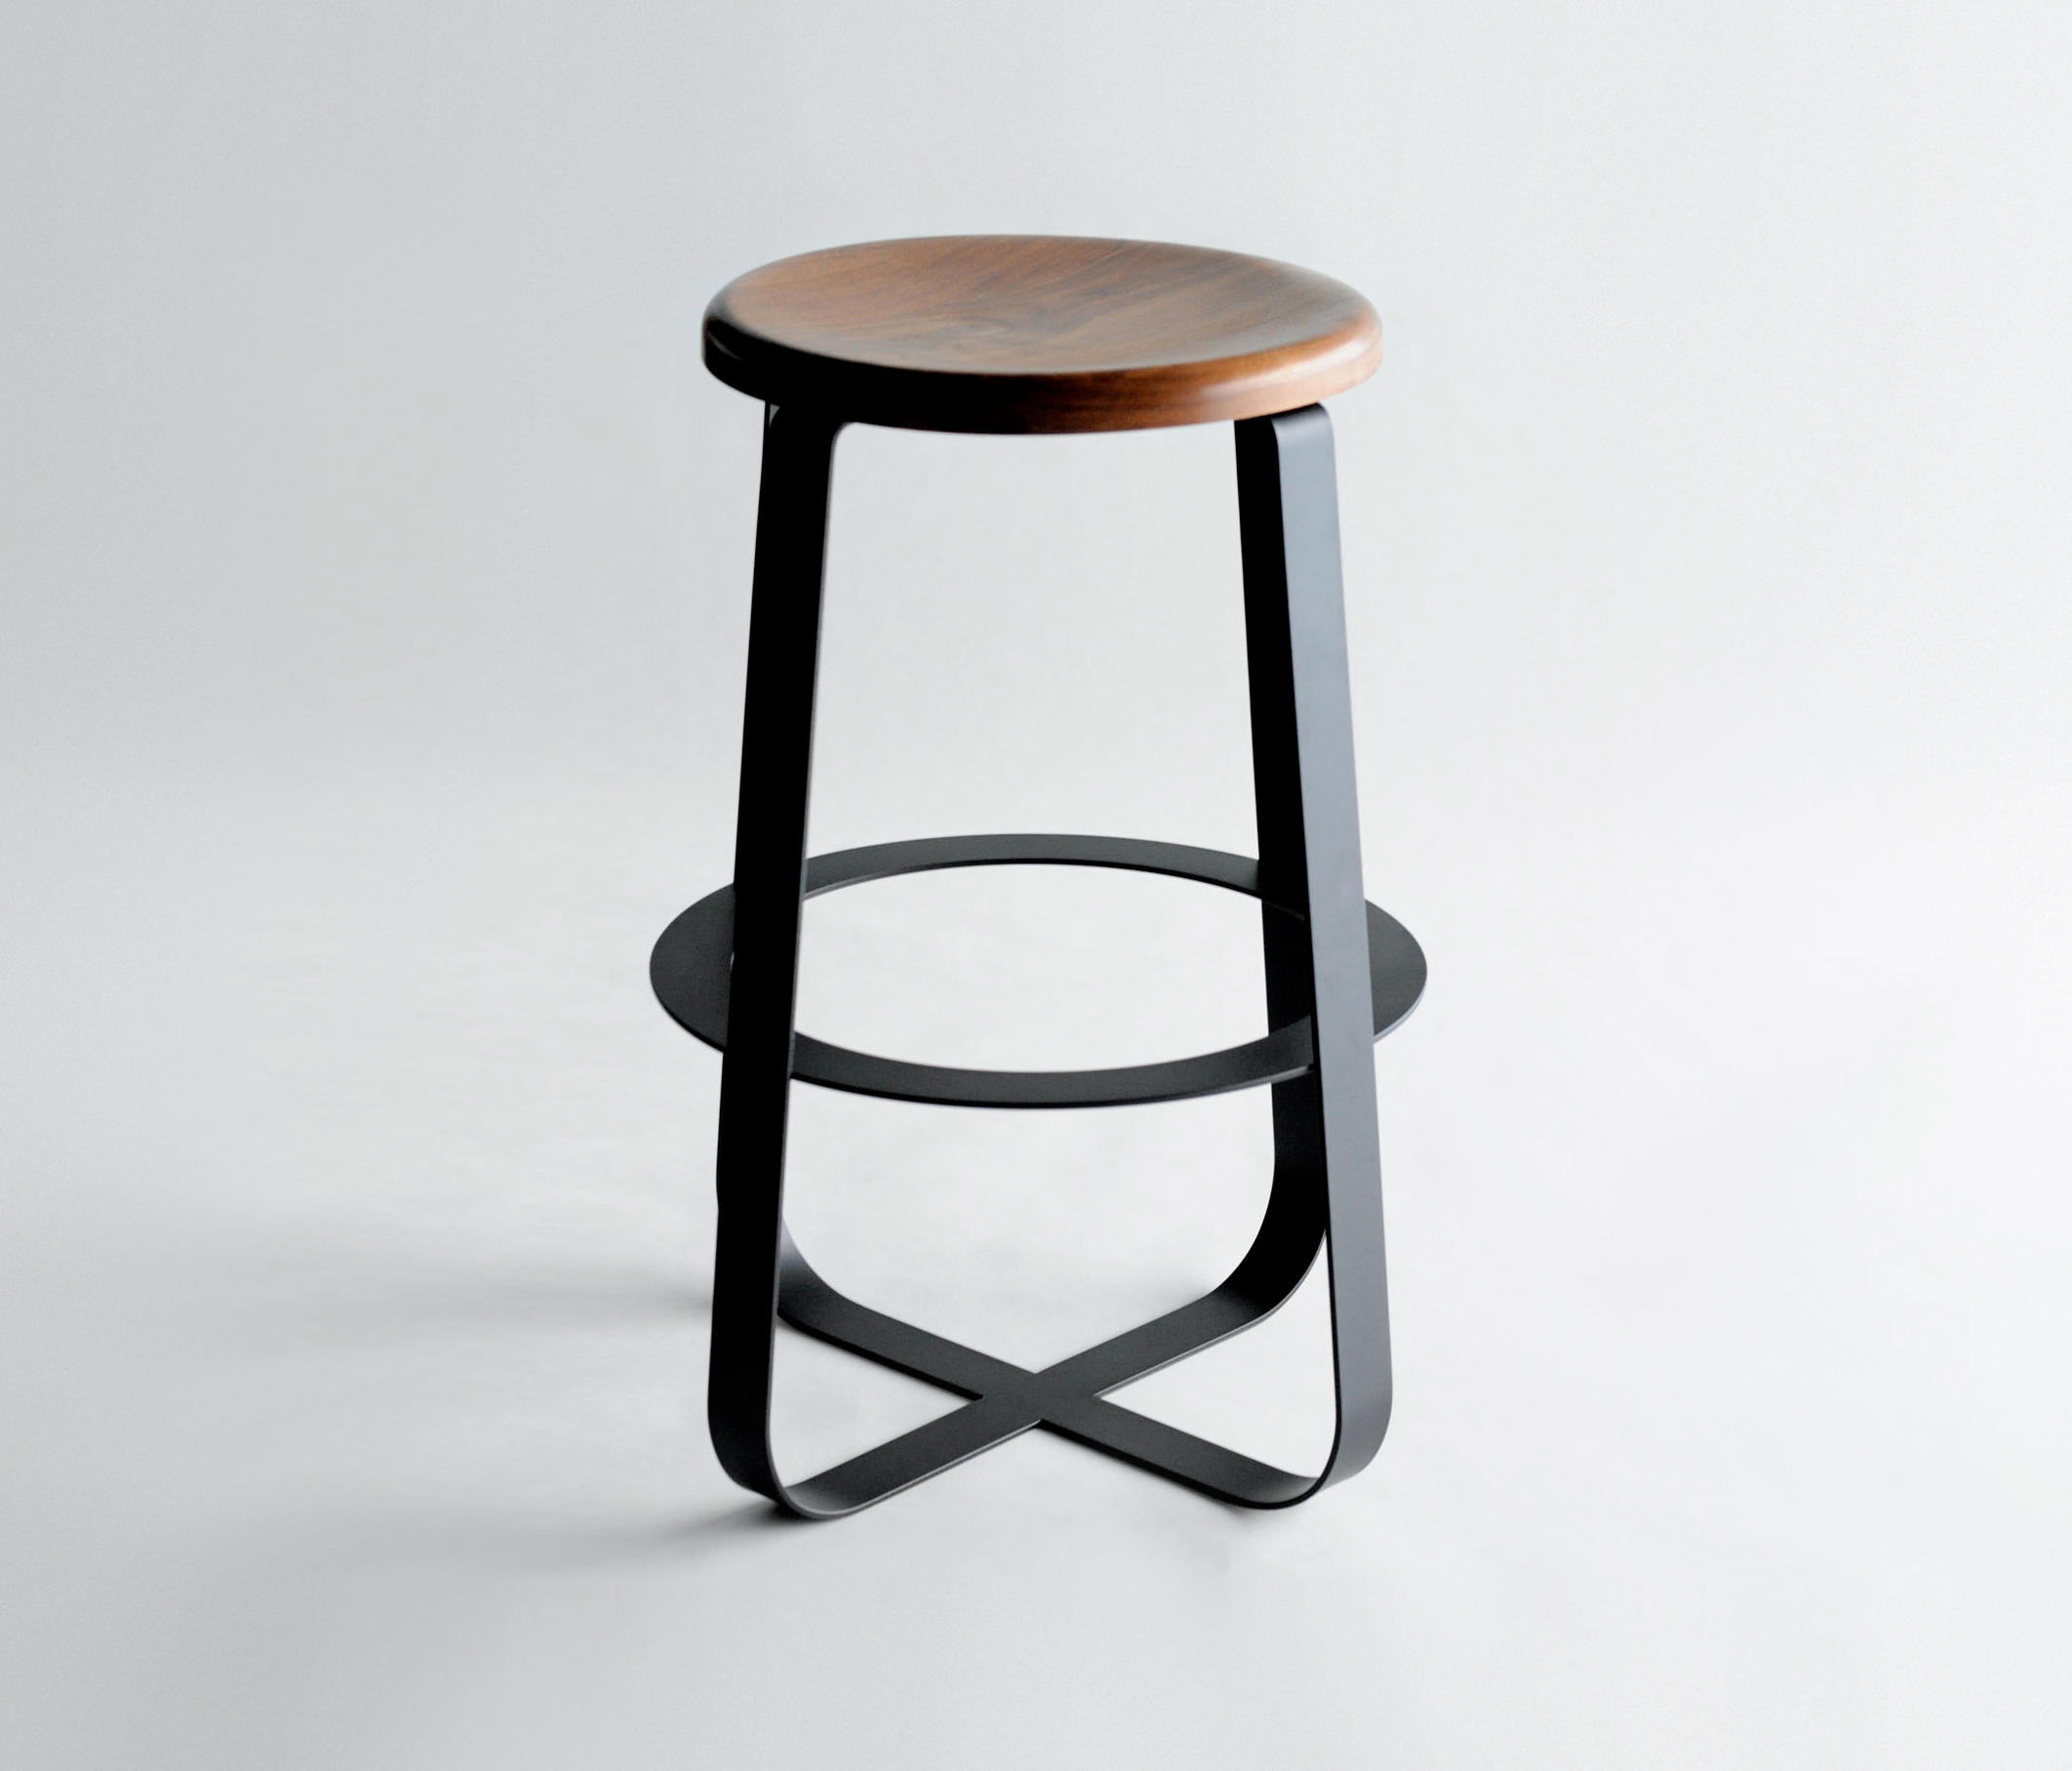 Admirable Primi Counter Stool Designer Furniture Architonic Machost Co Dining Chair Design Ideas Machostcouk